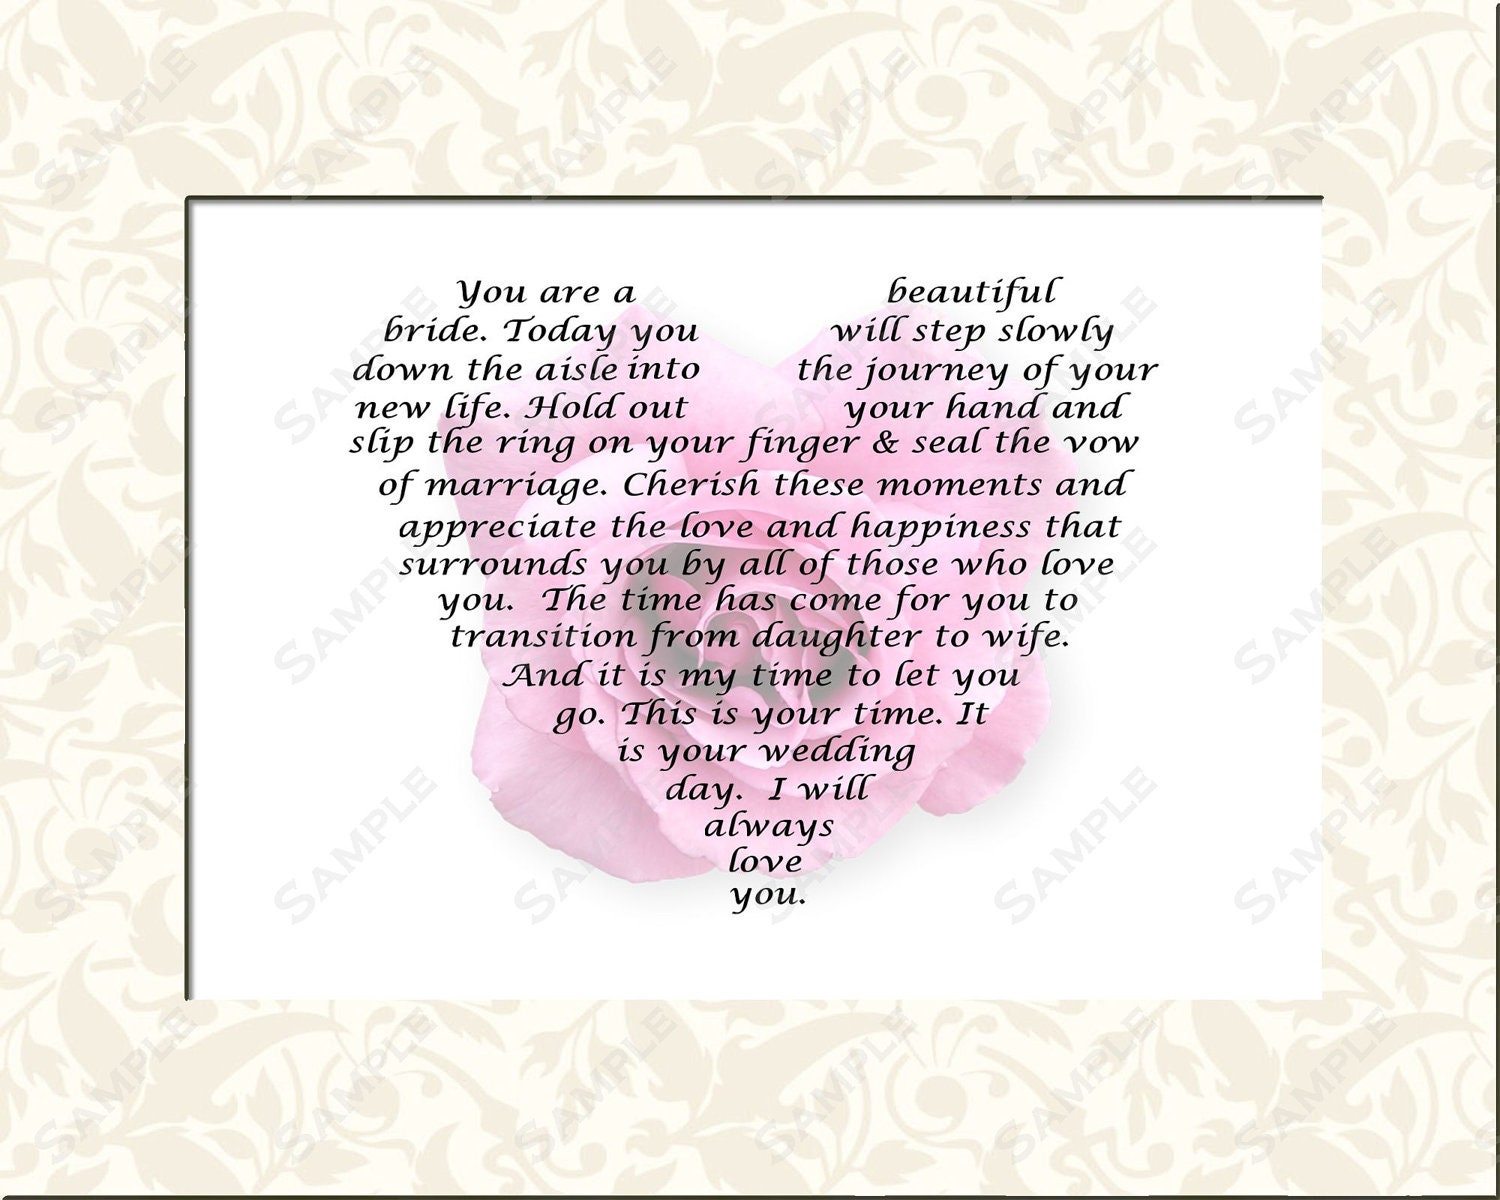 Standard Monetary Wedding Gift: Personalized Bridal Gift For Wedding Day Gift Poem From Mom Or